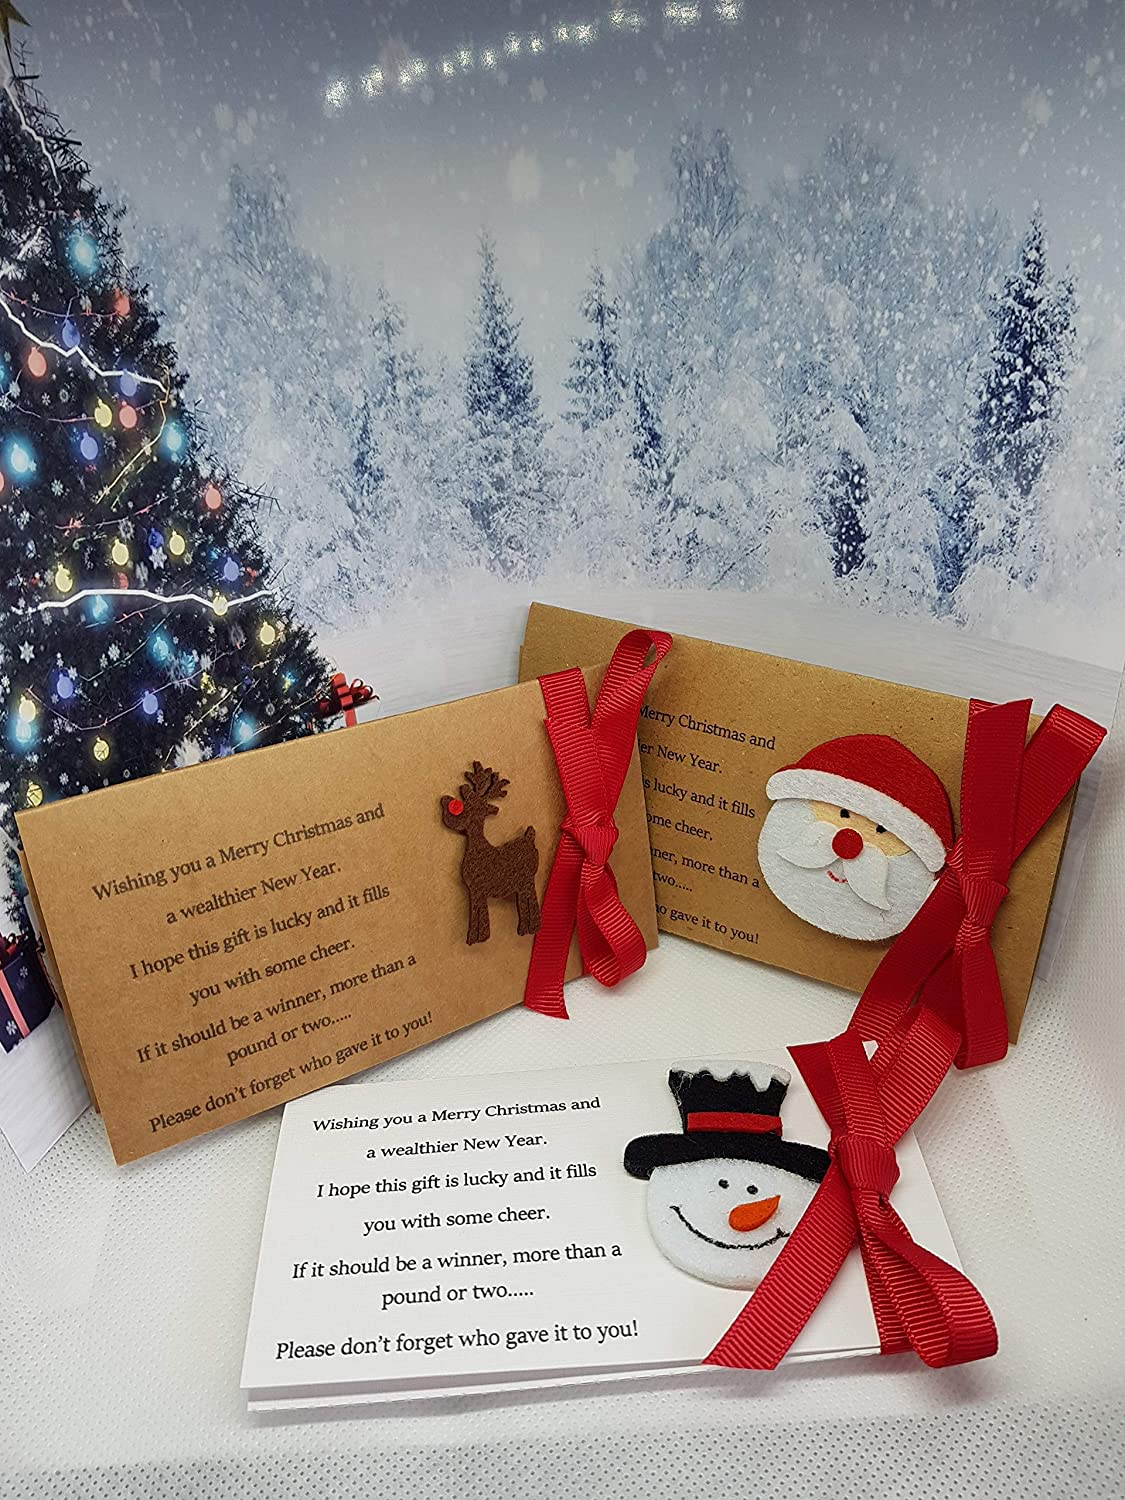 Table Favours Place Cards Secret Santa 3 designs Scratchcard Envelopes Christmas Lottery Ticket Wallet Brown or White